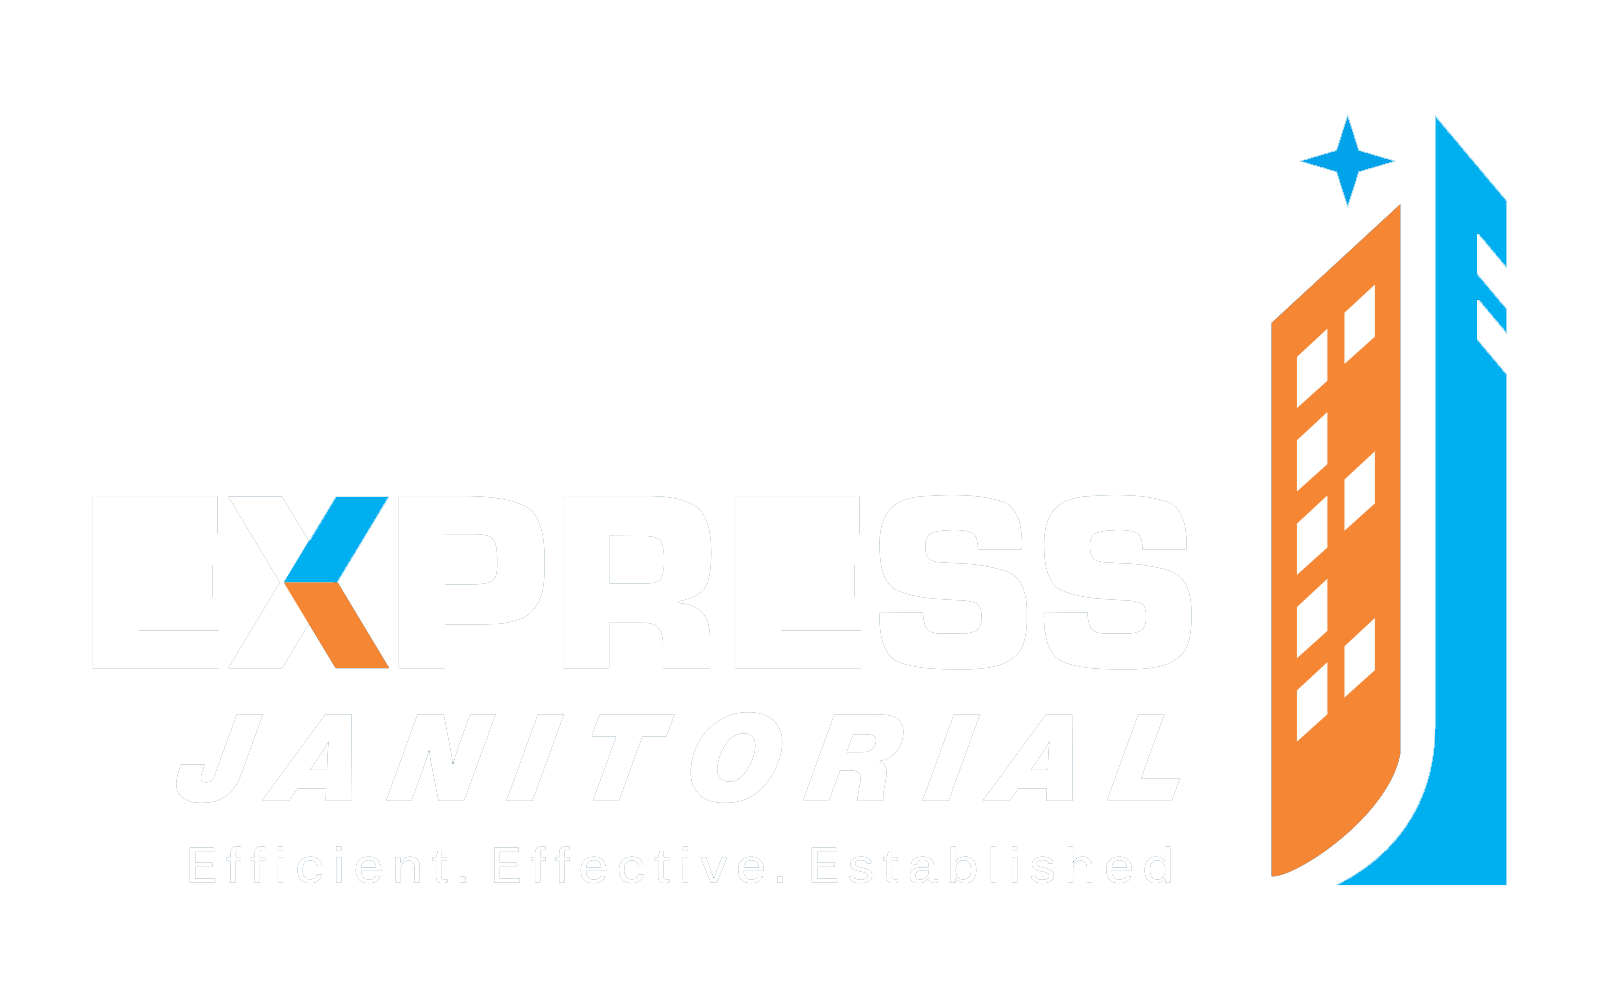 Express Janitorial Services Logo